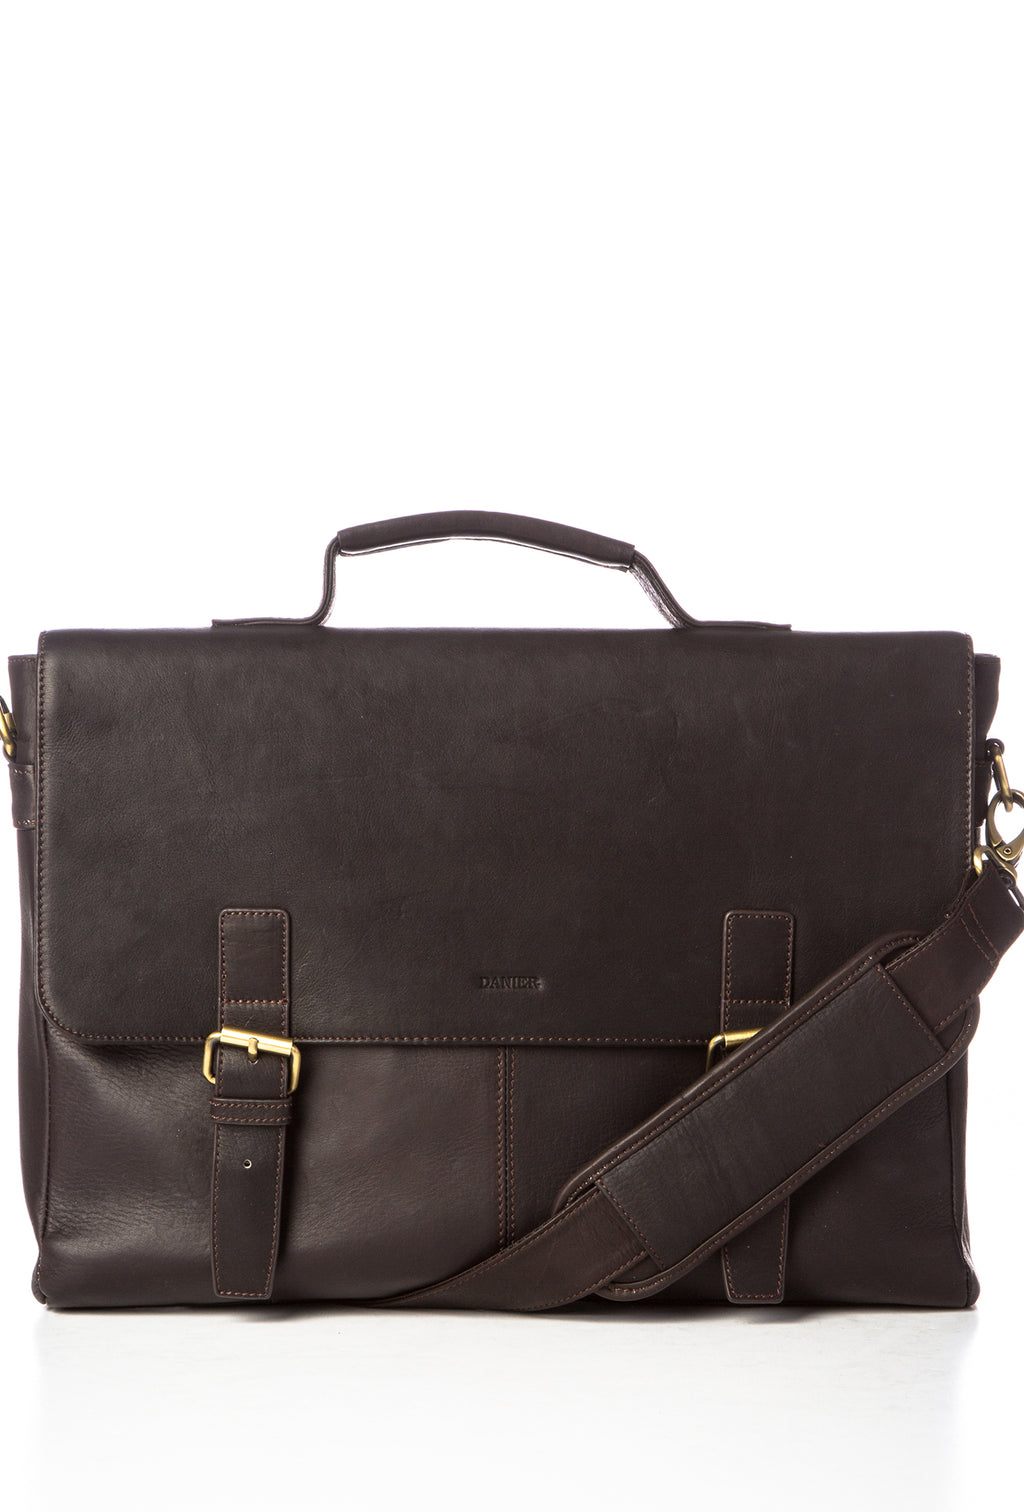 CIPRIANO - Rugged Leather Briefcase - Brown